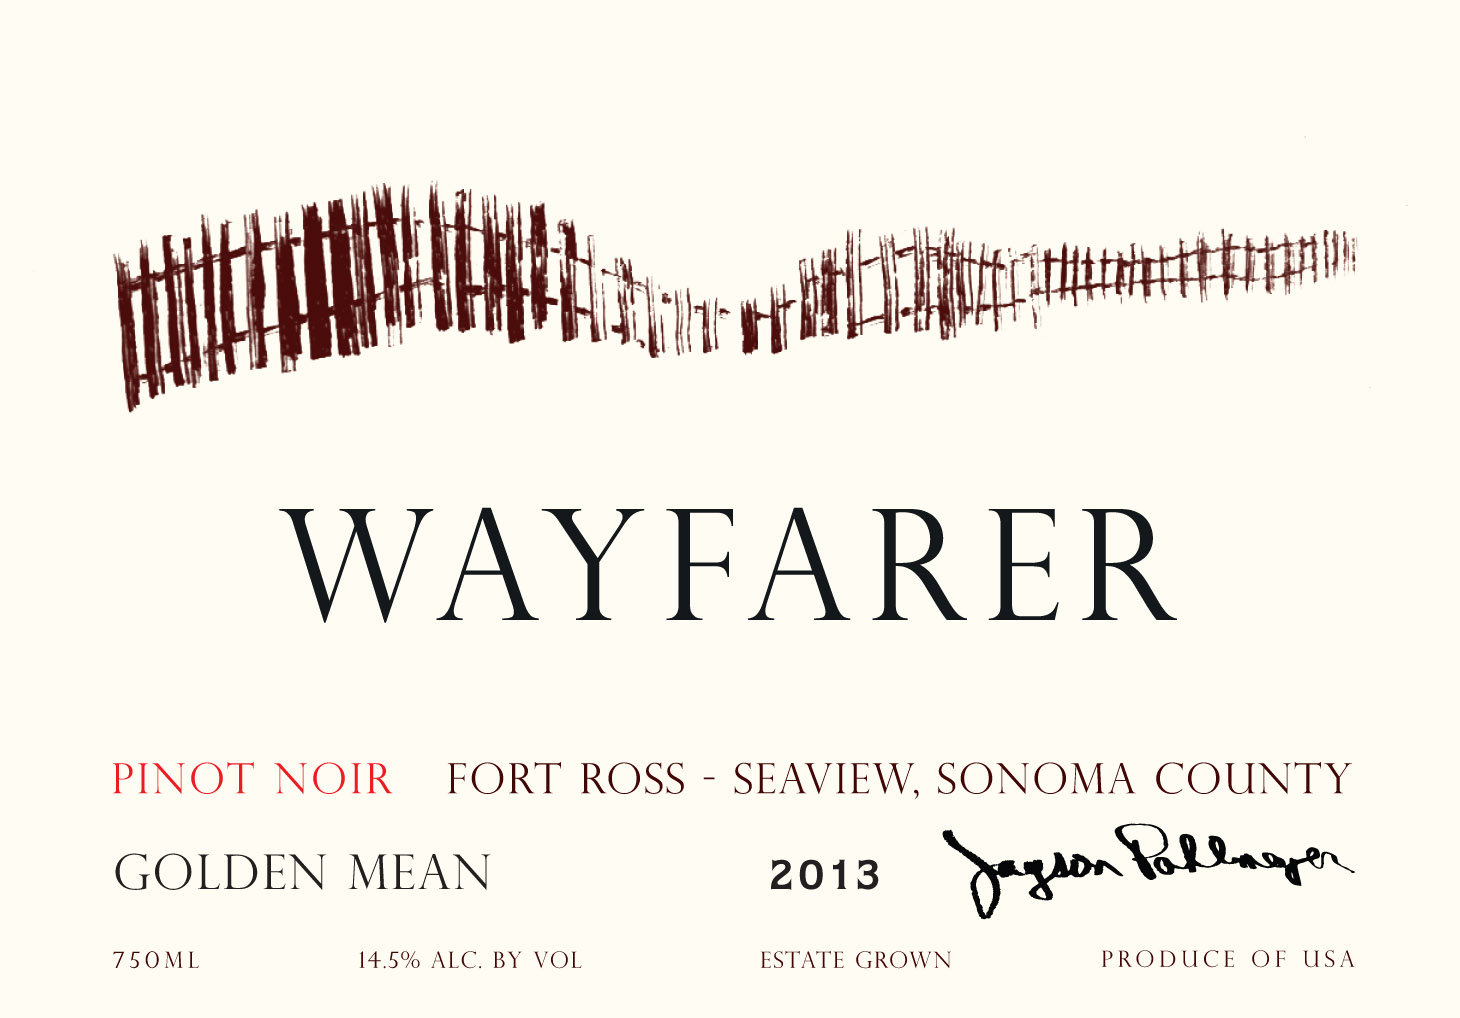 2013 Wayfarer Pinot Noir Golden Mean